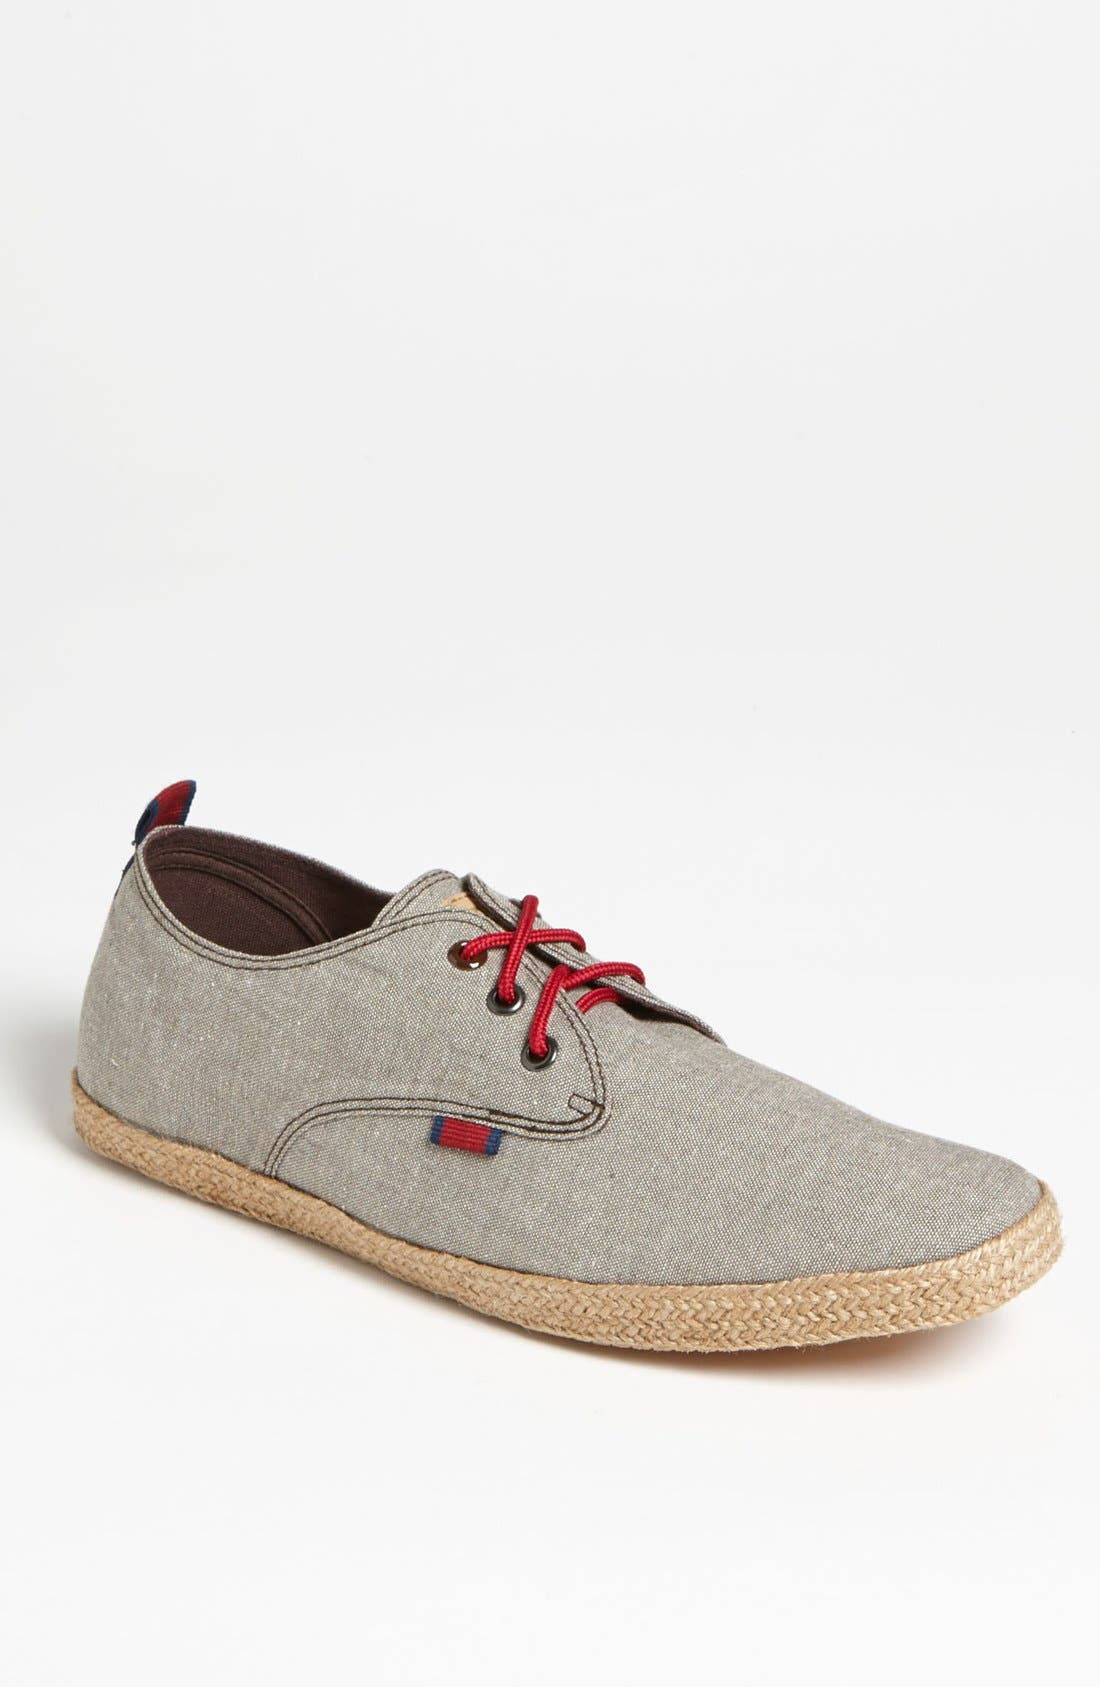 Main Image - Ben Sherman 'Pril' Sneaker (Men)